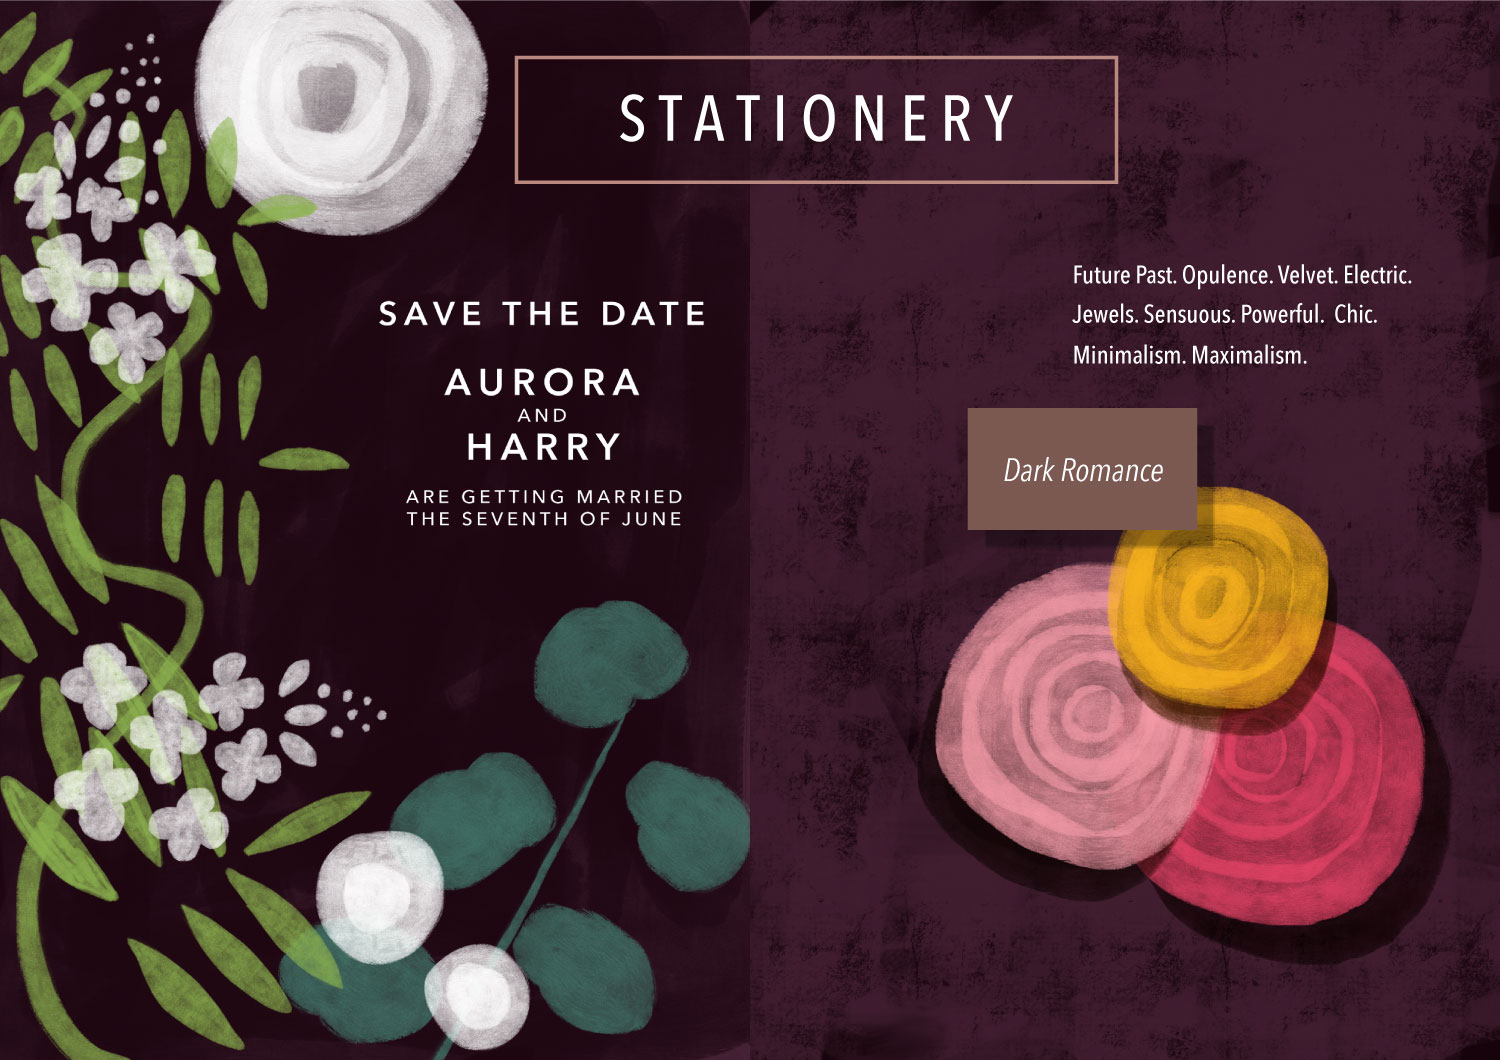 Stationery: Dark Romance